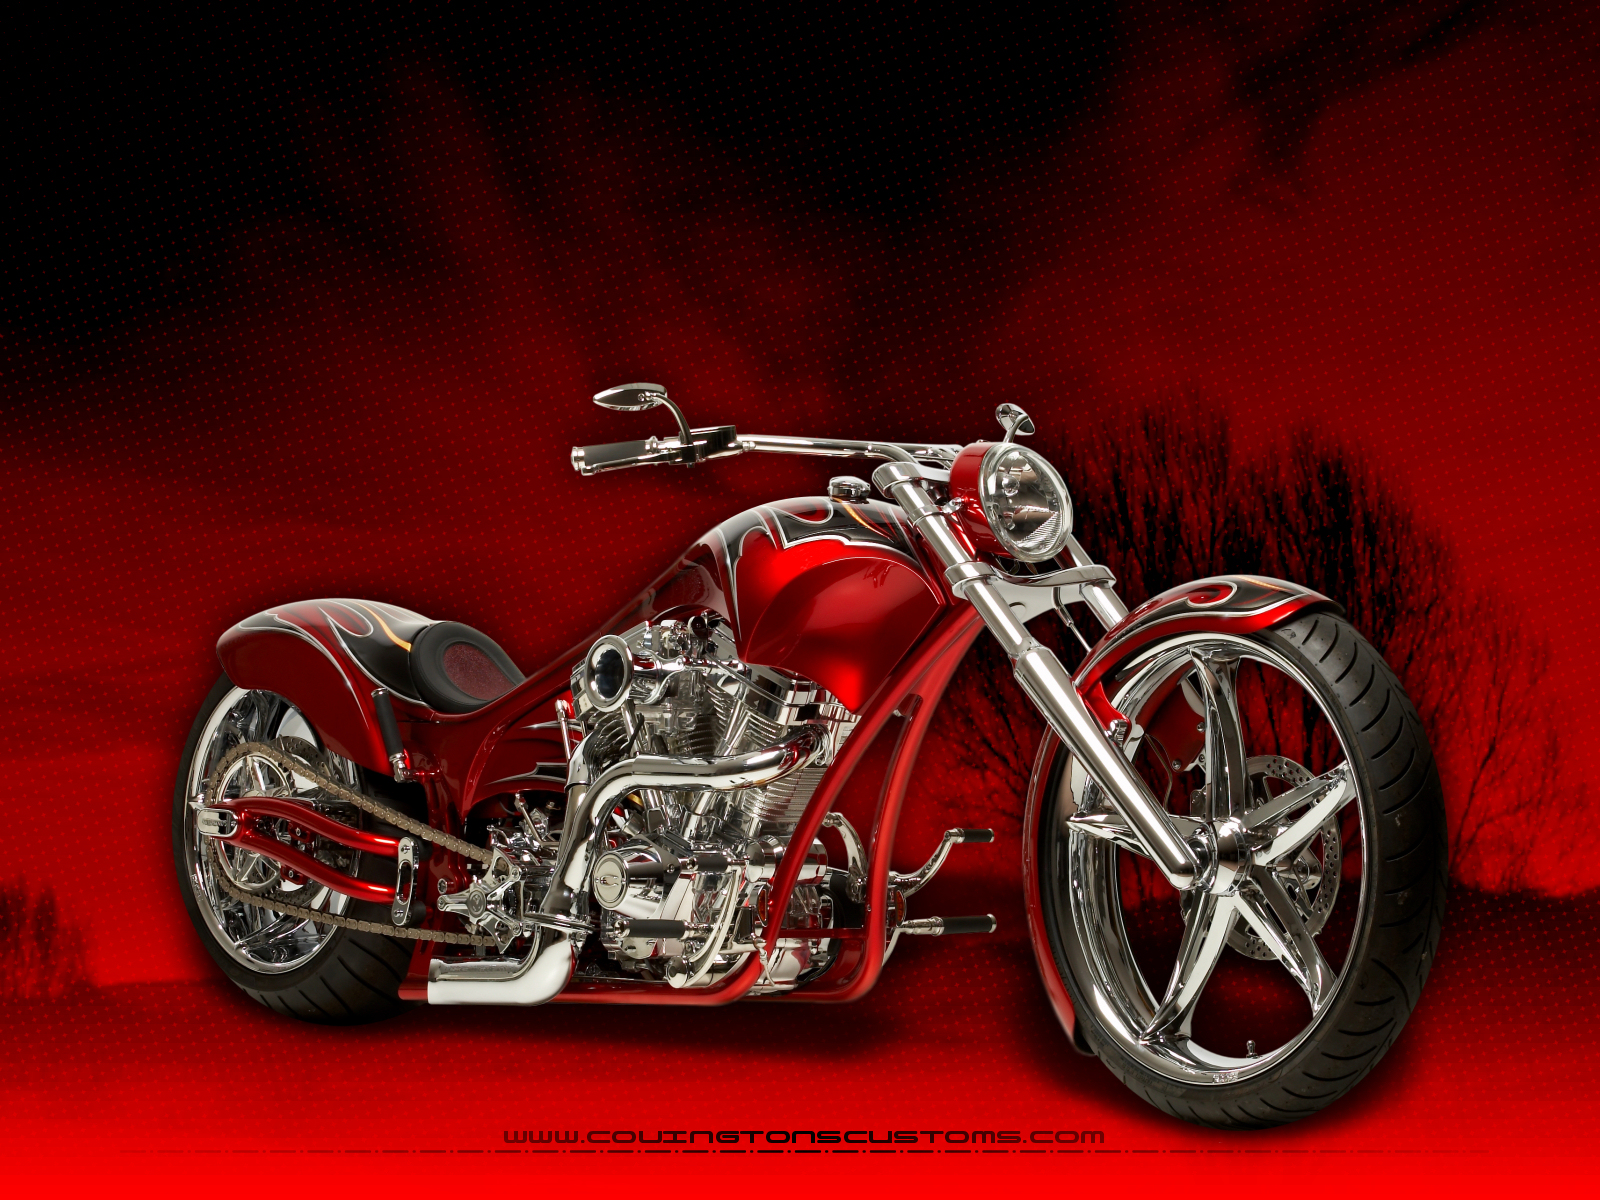 Custom Bikes Wallpaper Free Wallpapers From